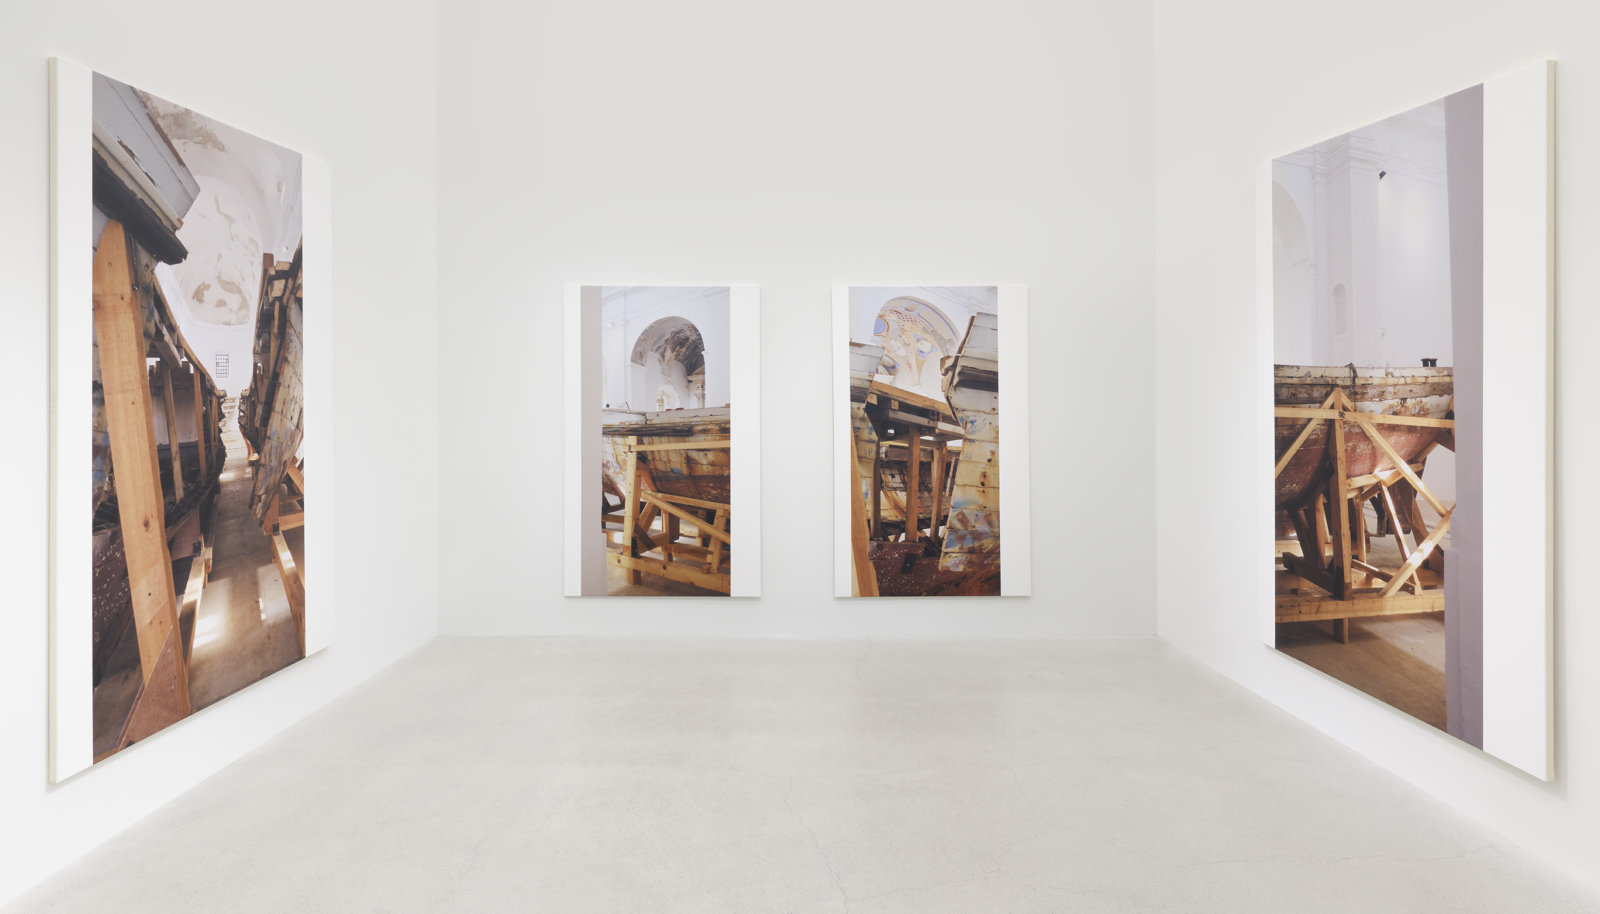 Ian Wallace, Shipwreck (After Naufragio con Spettatore by Claudio Parmiggiani) I–IV, 2010, photolaminate with acrylic on canvas, 4 parts, each 96 x 60 in. (244 x 152 cm) by Ian Wallace